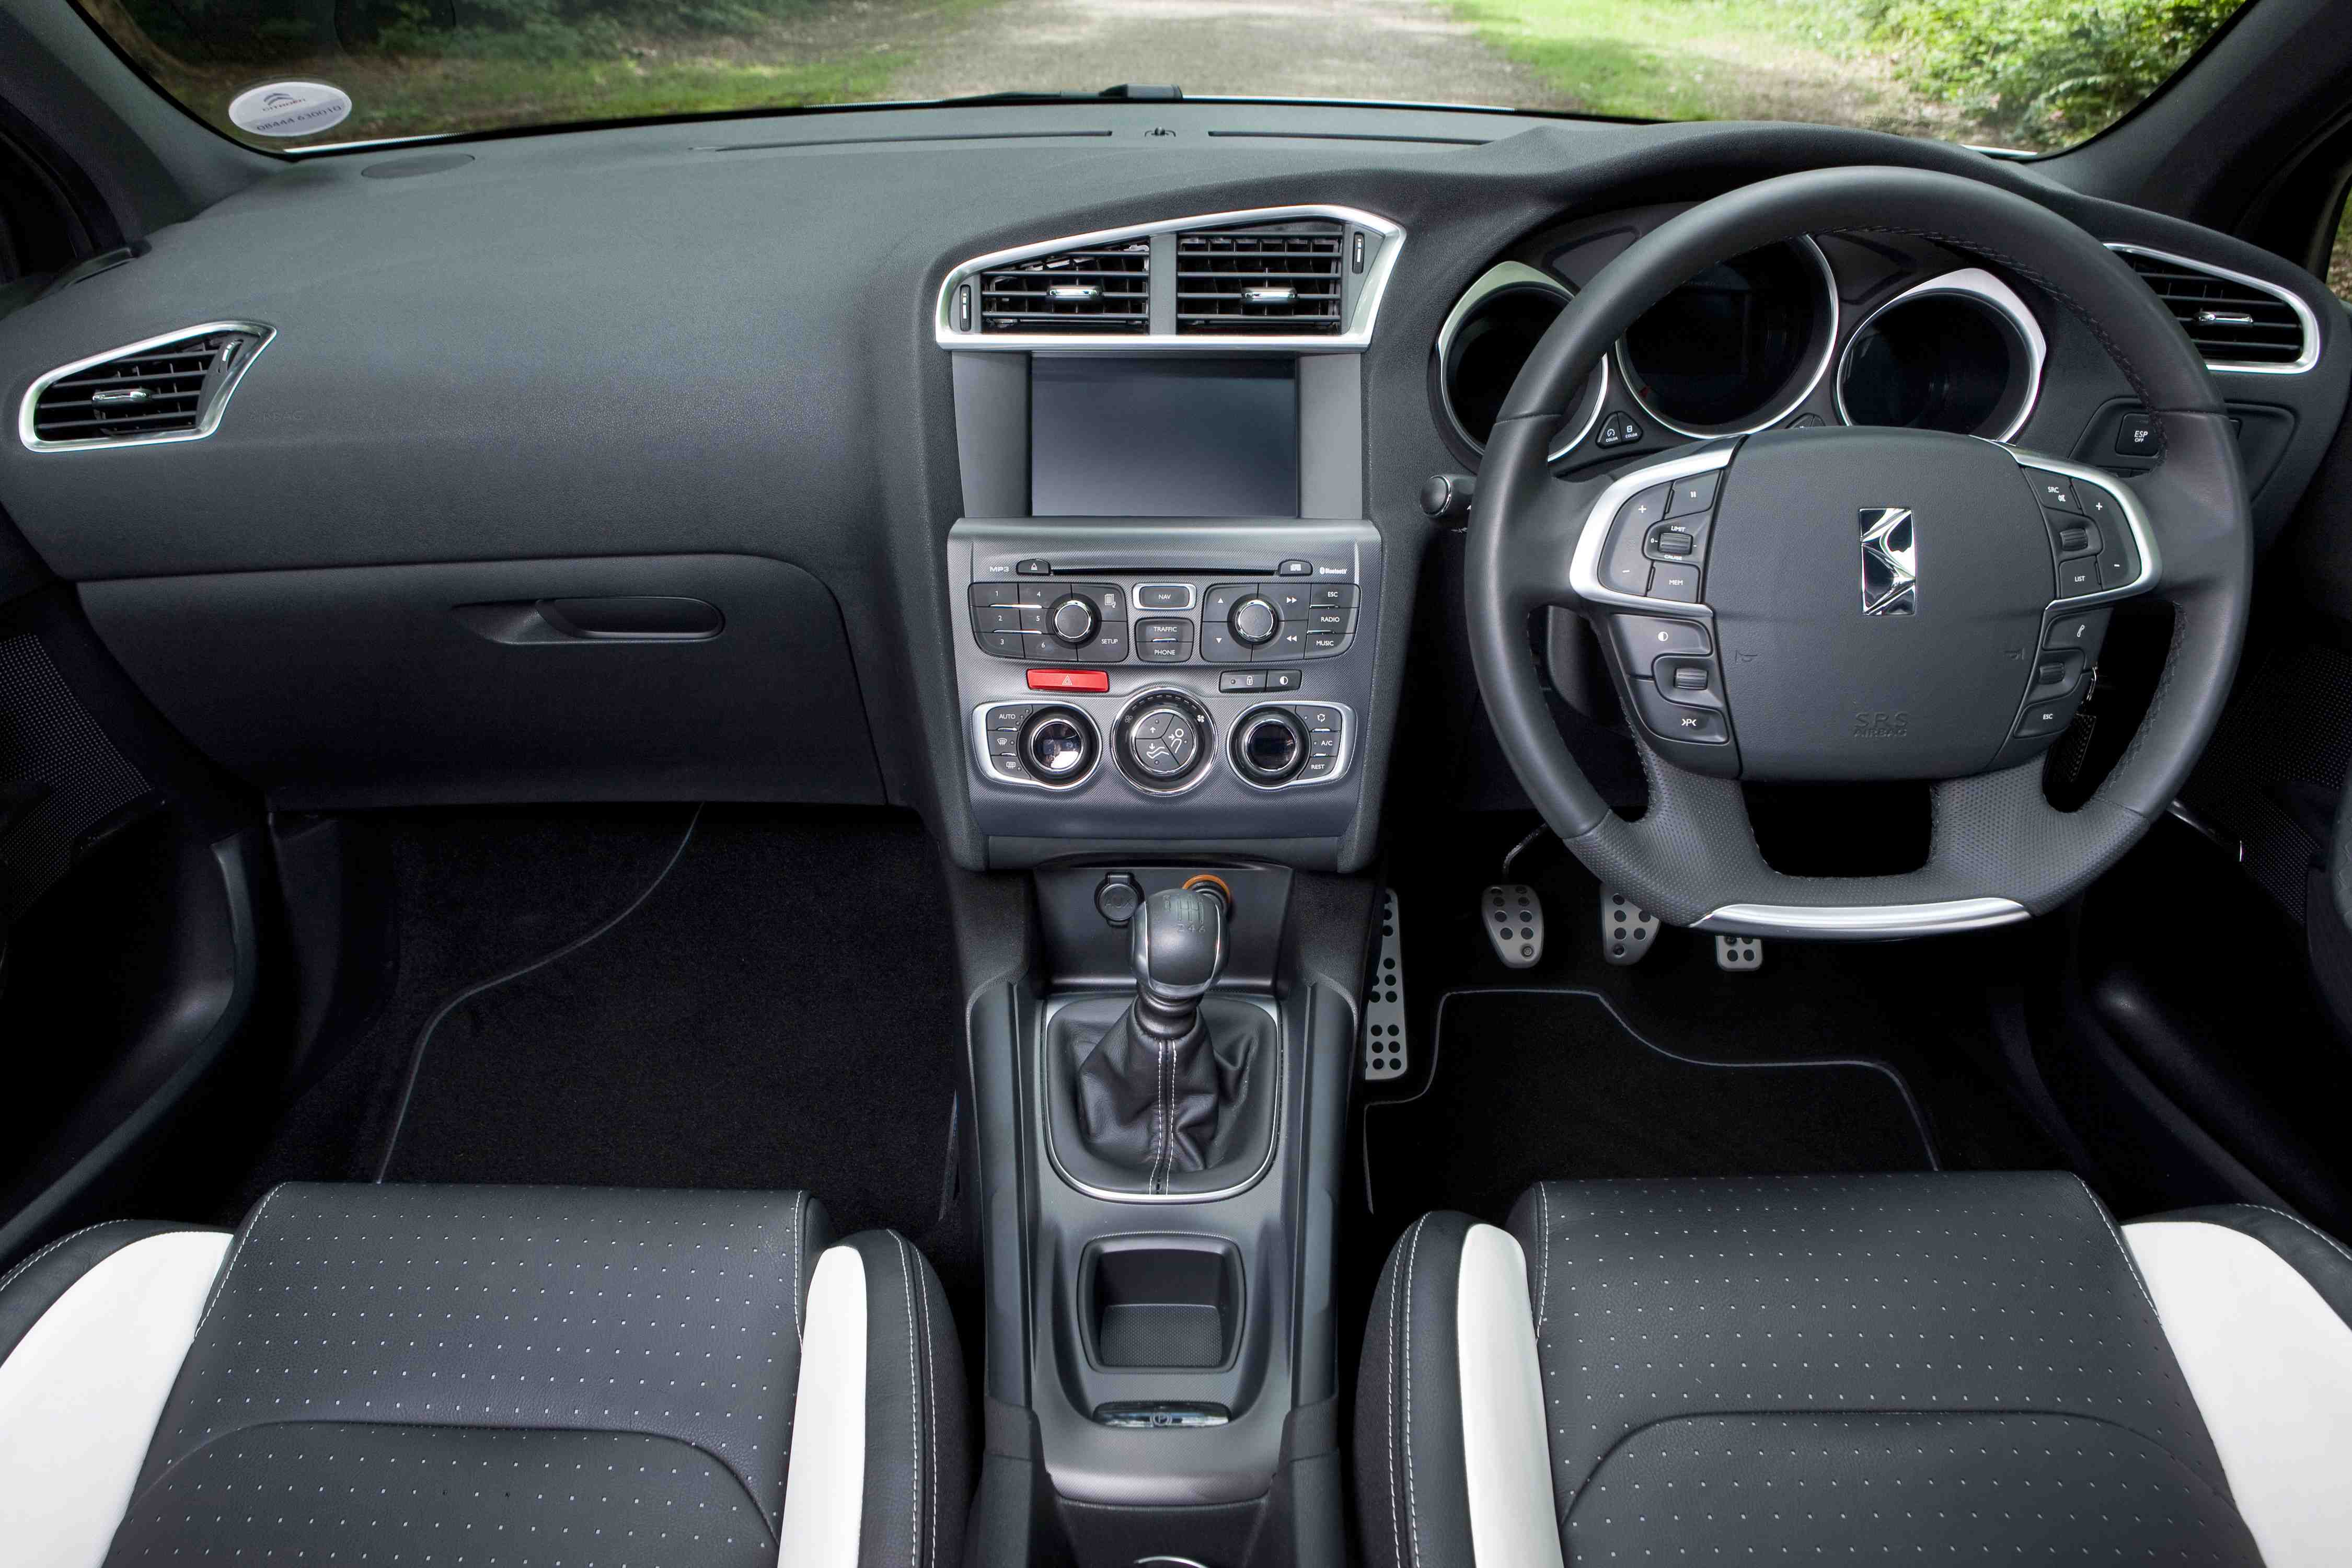 Citroen DS4 interior - Wheel World Reviews